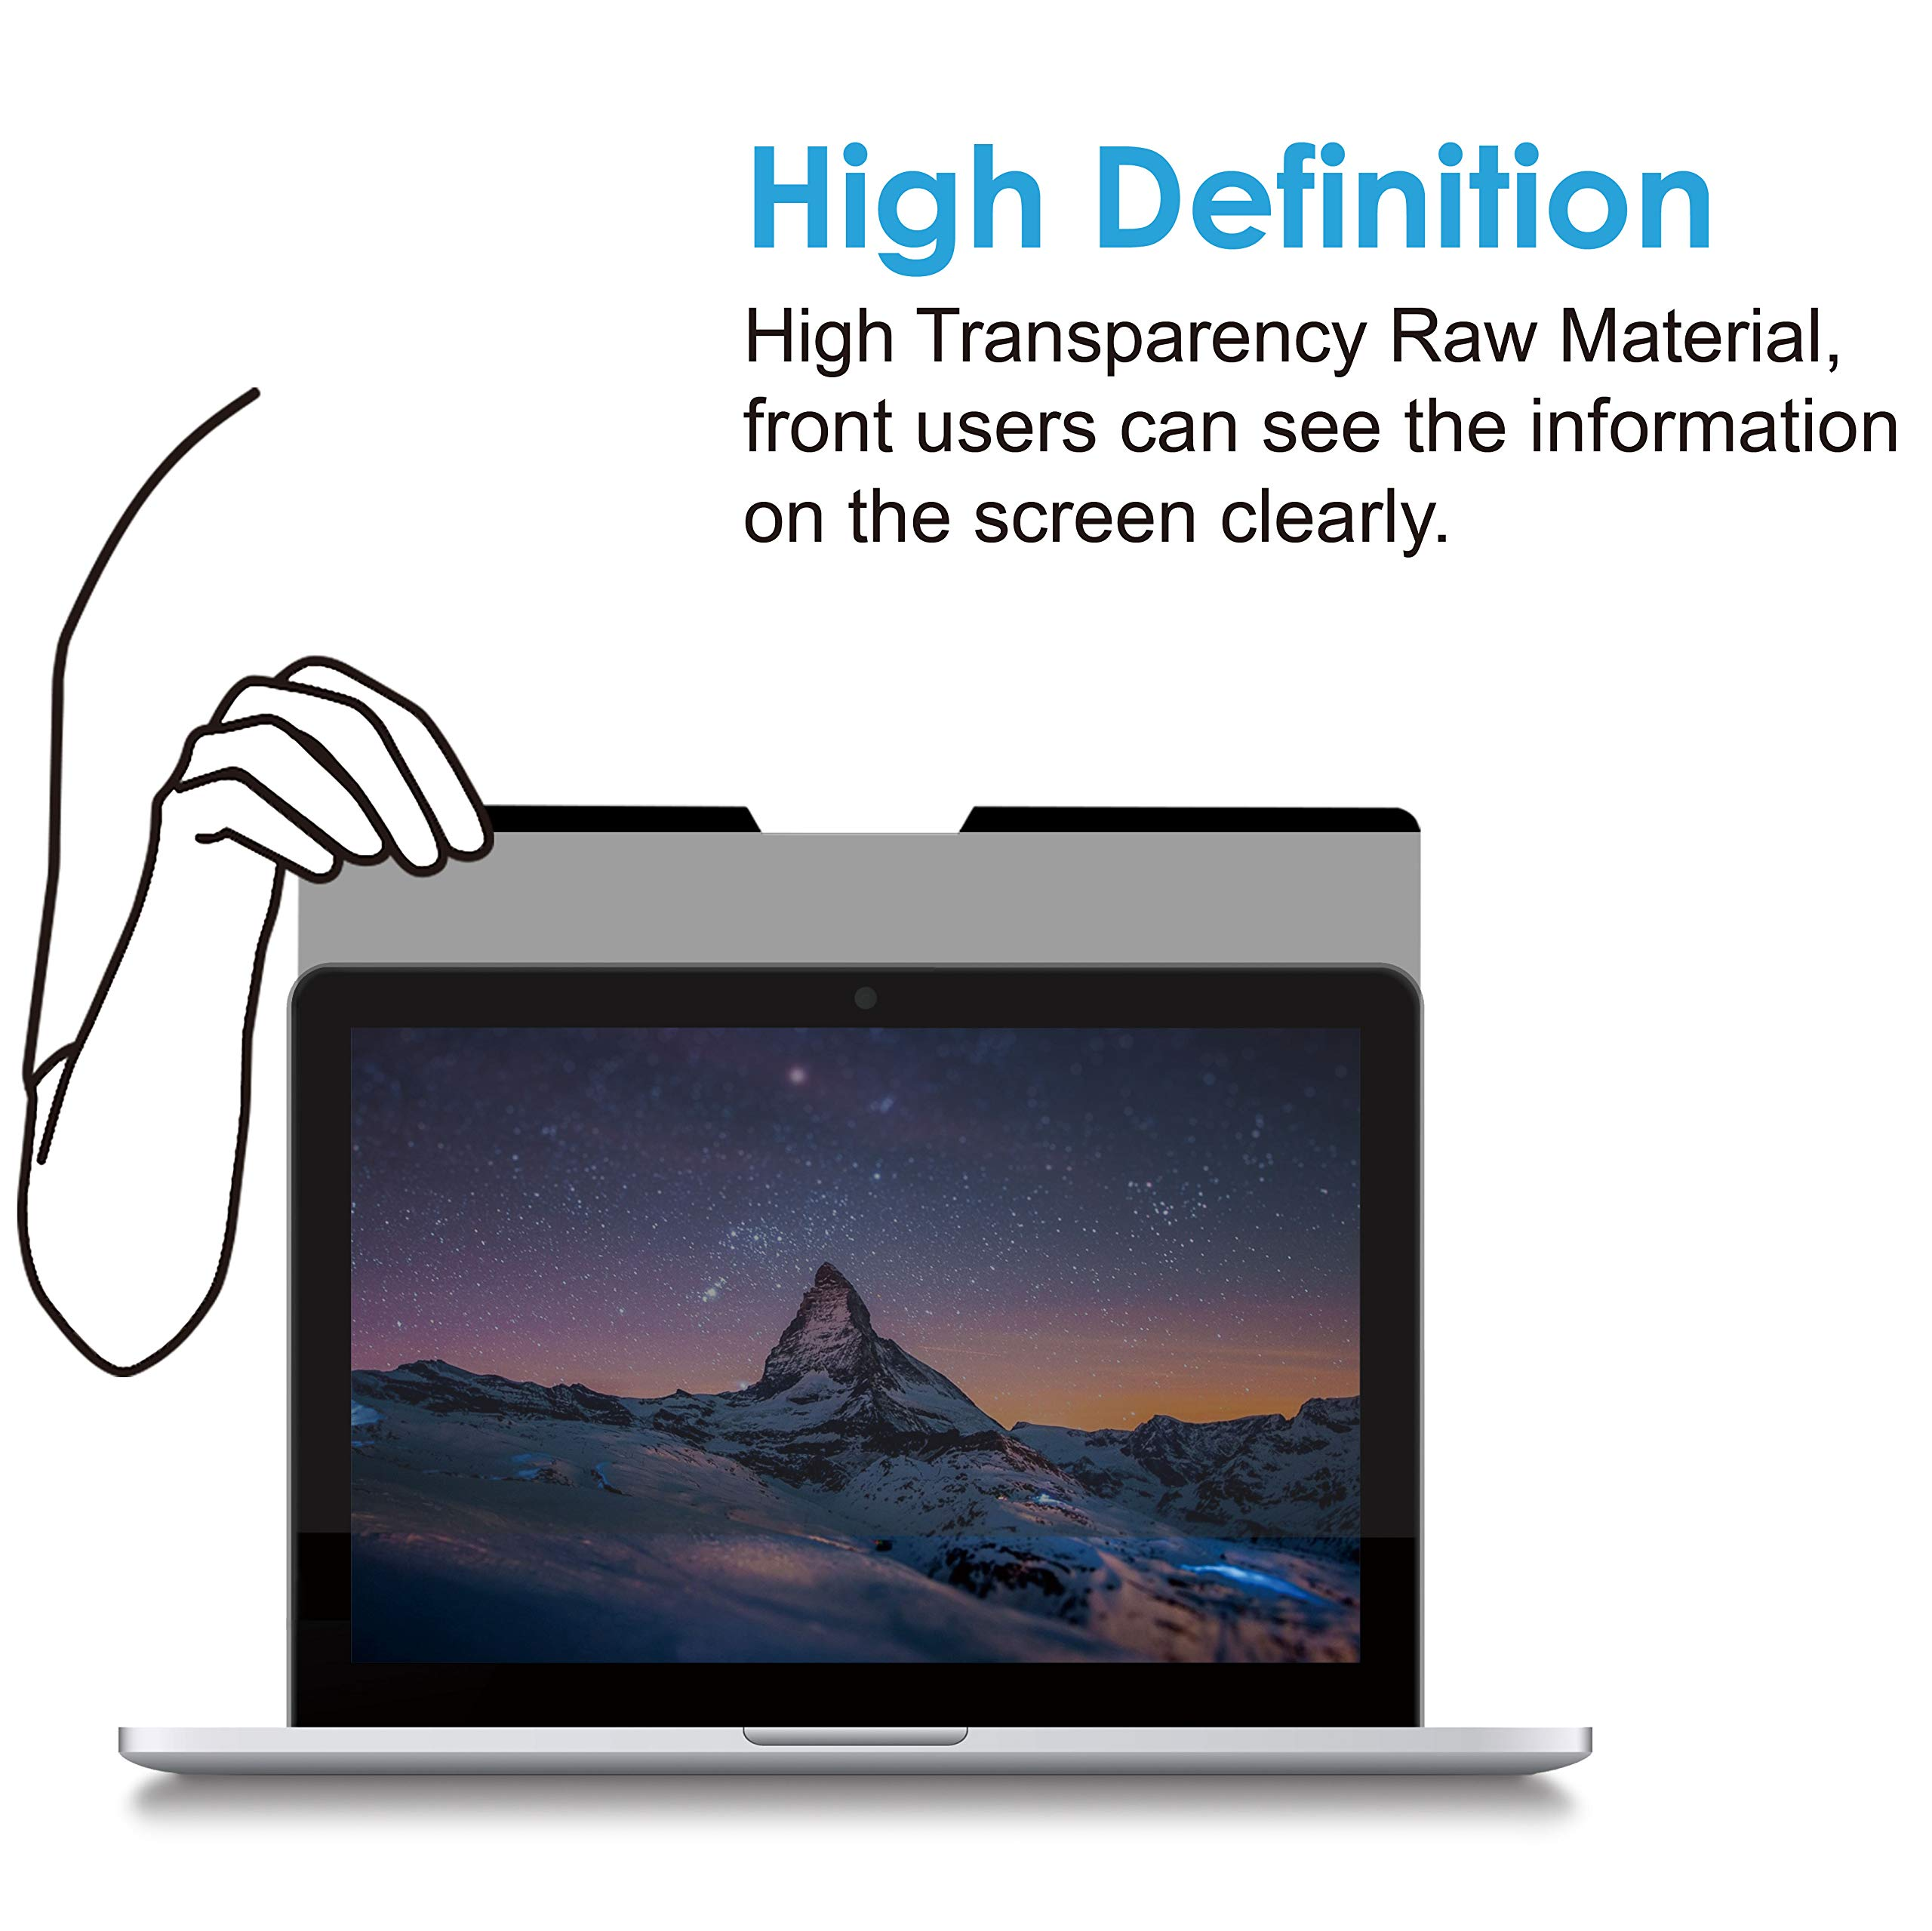 KAEMPFER Easy On/Off Magnetic Privacy Filter, No -Blue Light, Korea LG Filter High Definition, Screen Protector for Apple MacBook pro 15'' Touch Bar/No n-Touch Bar (Mid 2016) Retina Display for Laptop by KAEMPFER (Image #3)